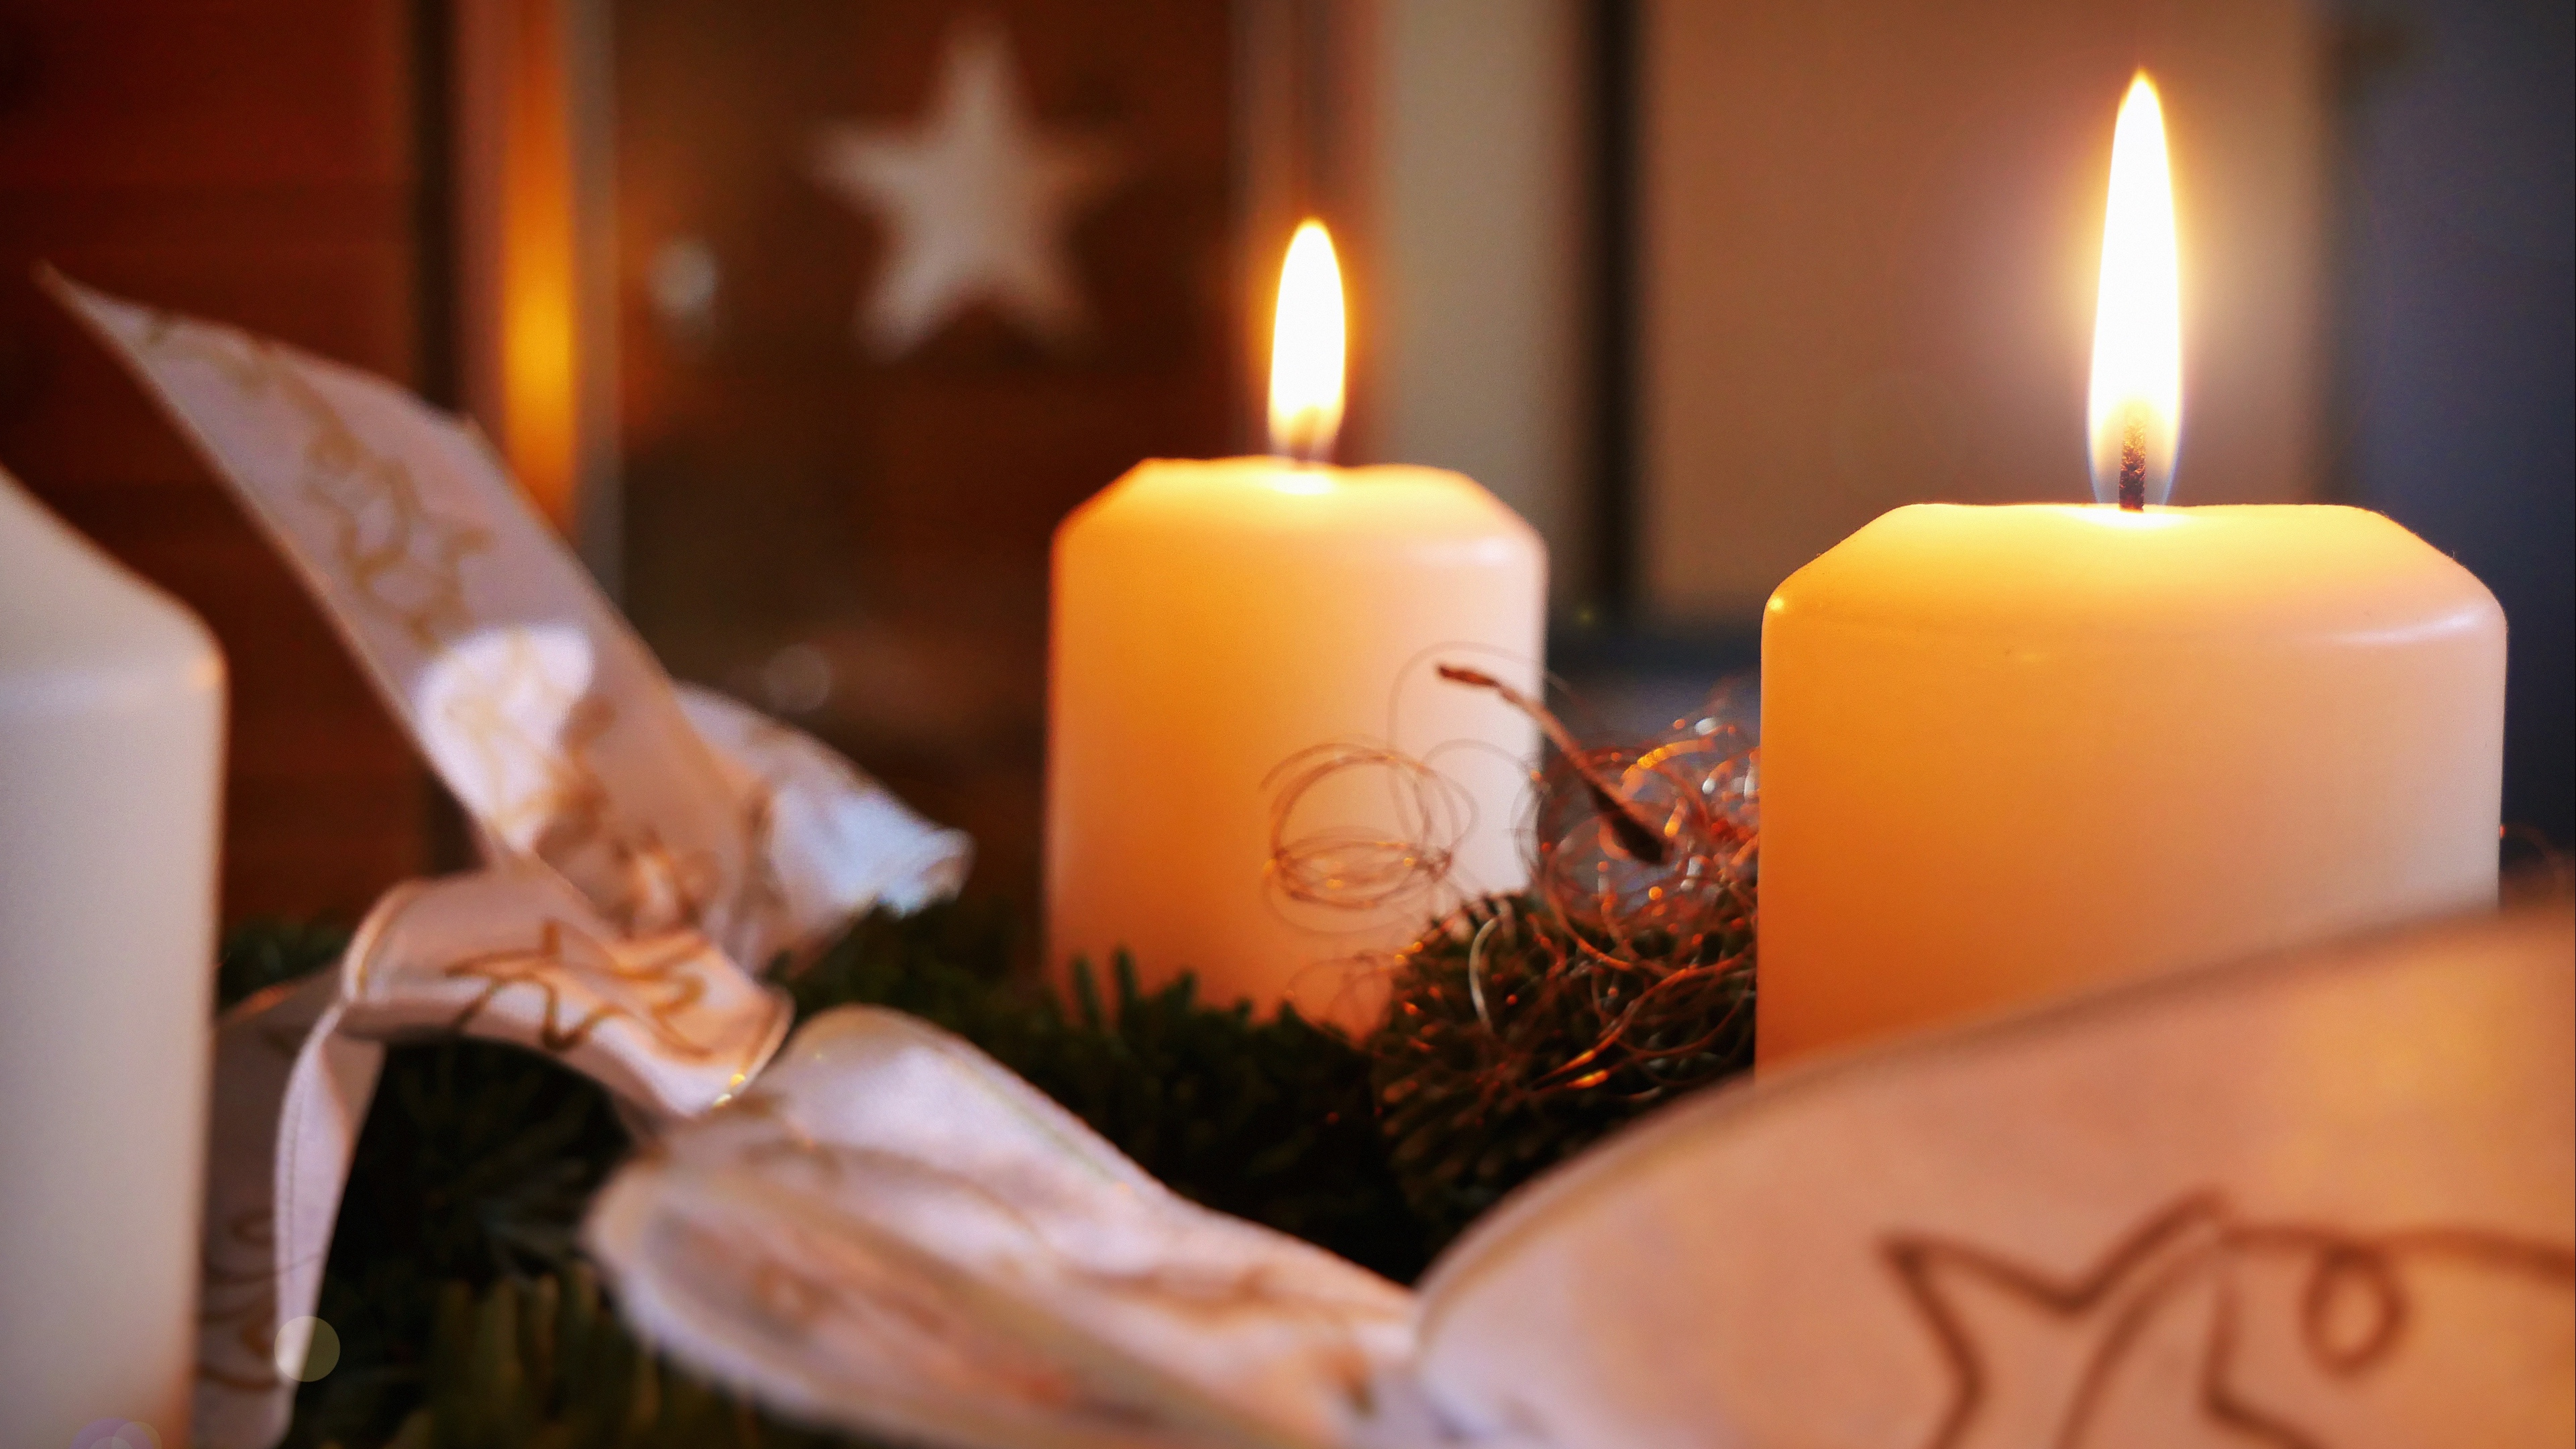 candles christmas new year 4k 1538344683 - candles, christmas, new year 4k - new year, Christmas, Candles